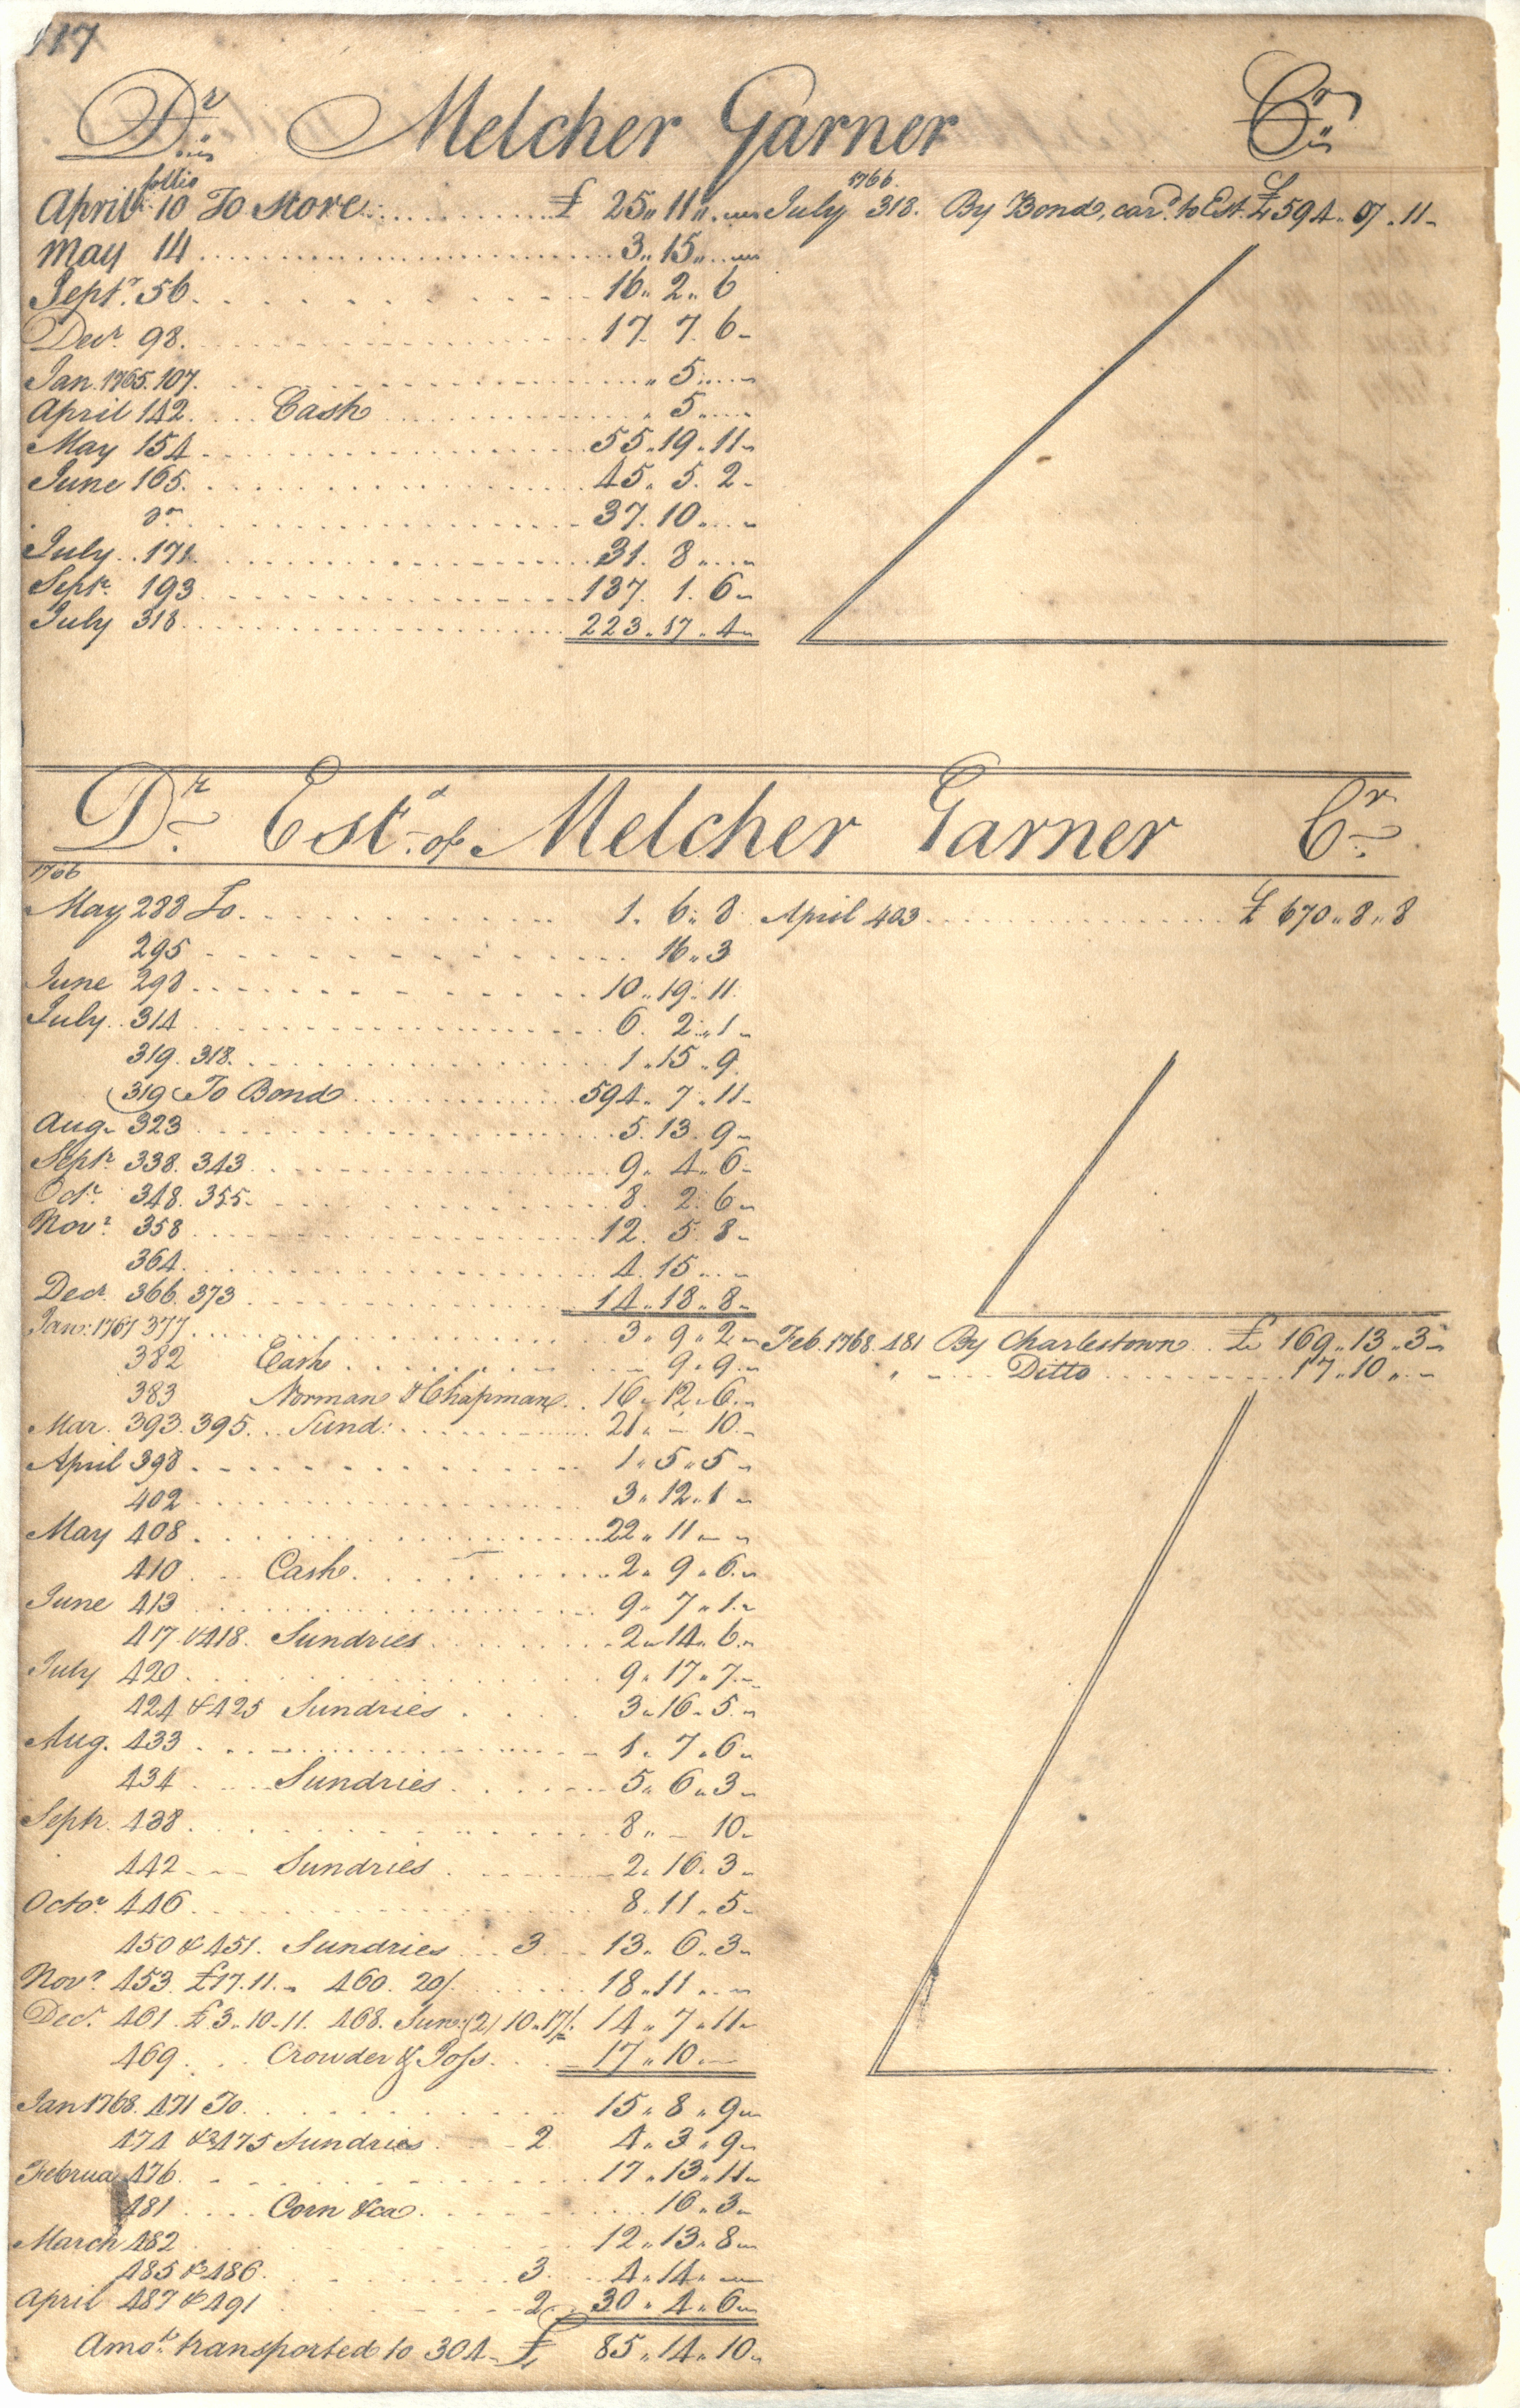 Plowden Weston's Business Ledger, page 117